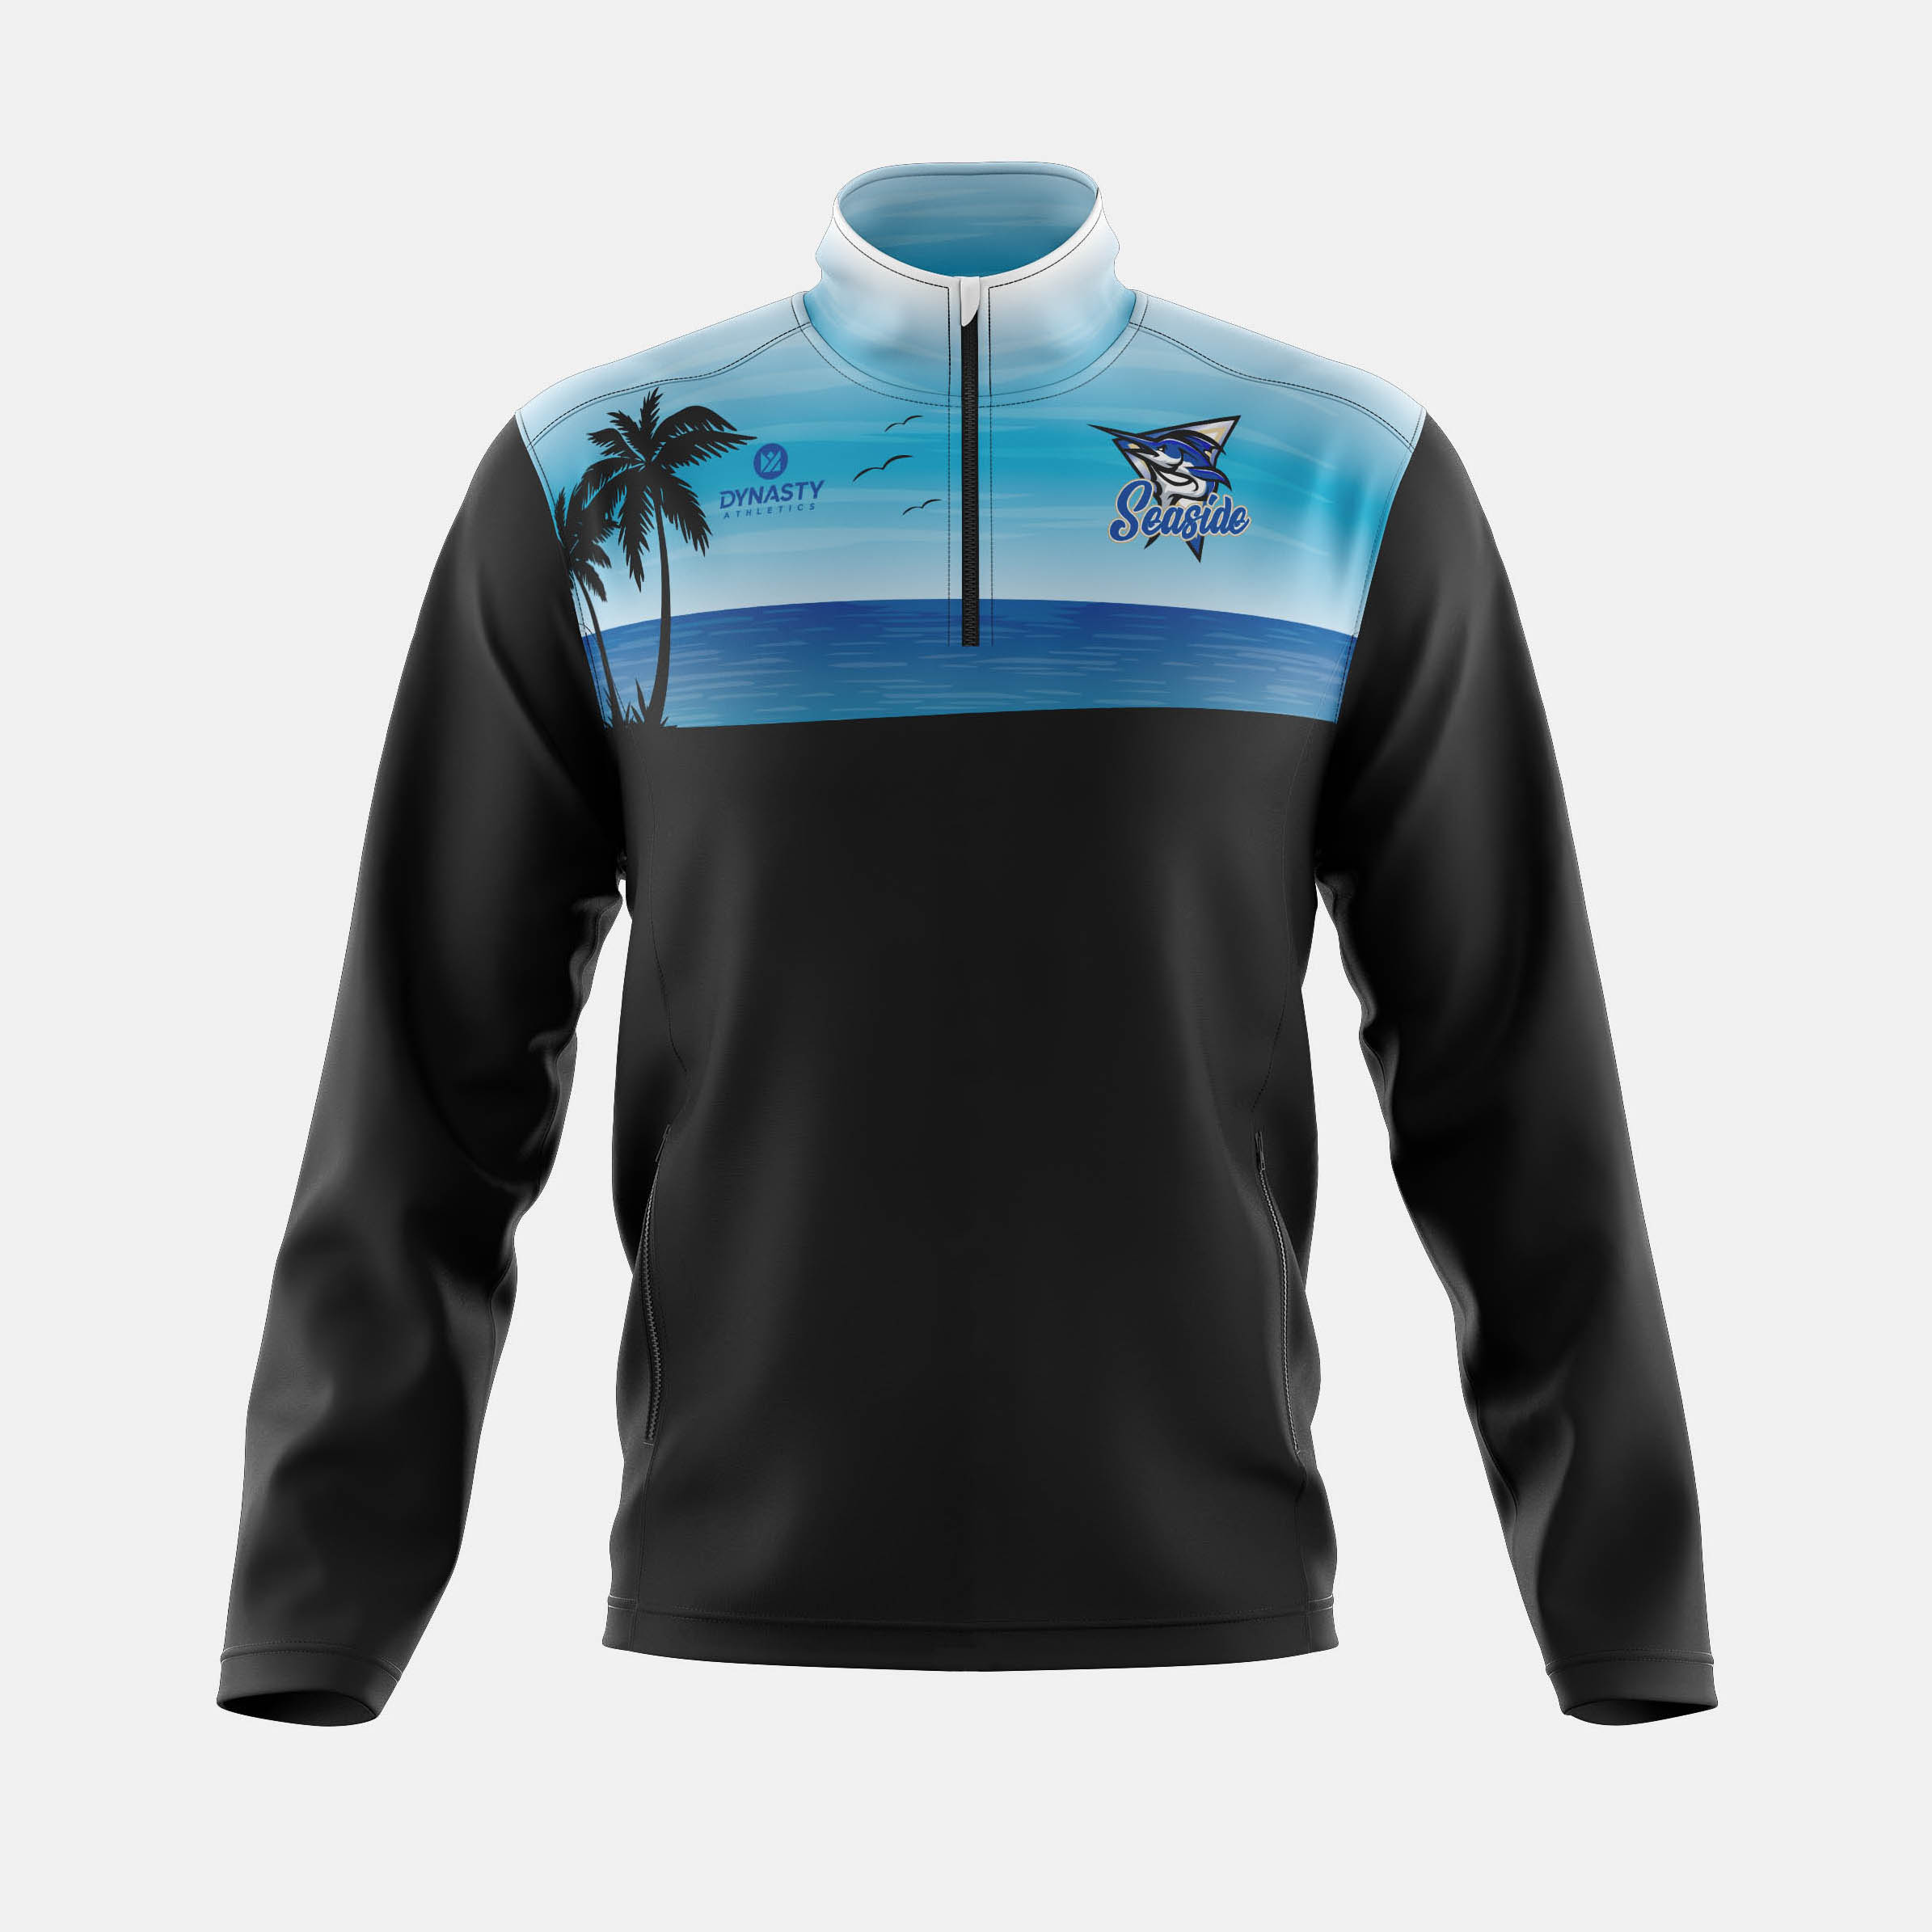 Seaside Qtr Zip Track Jacket Front View